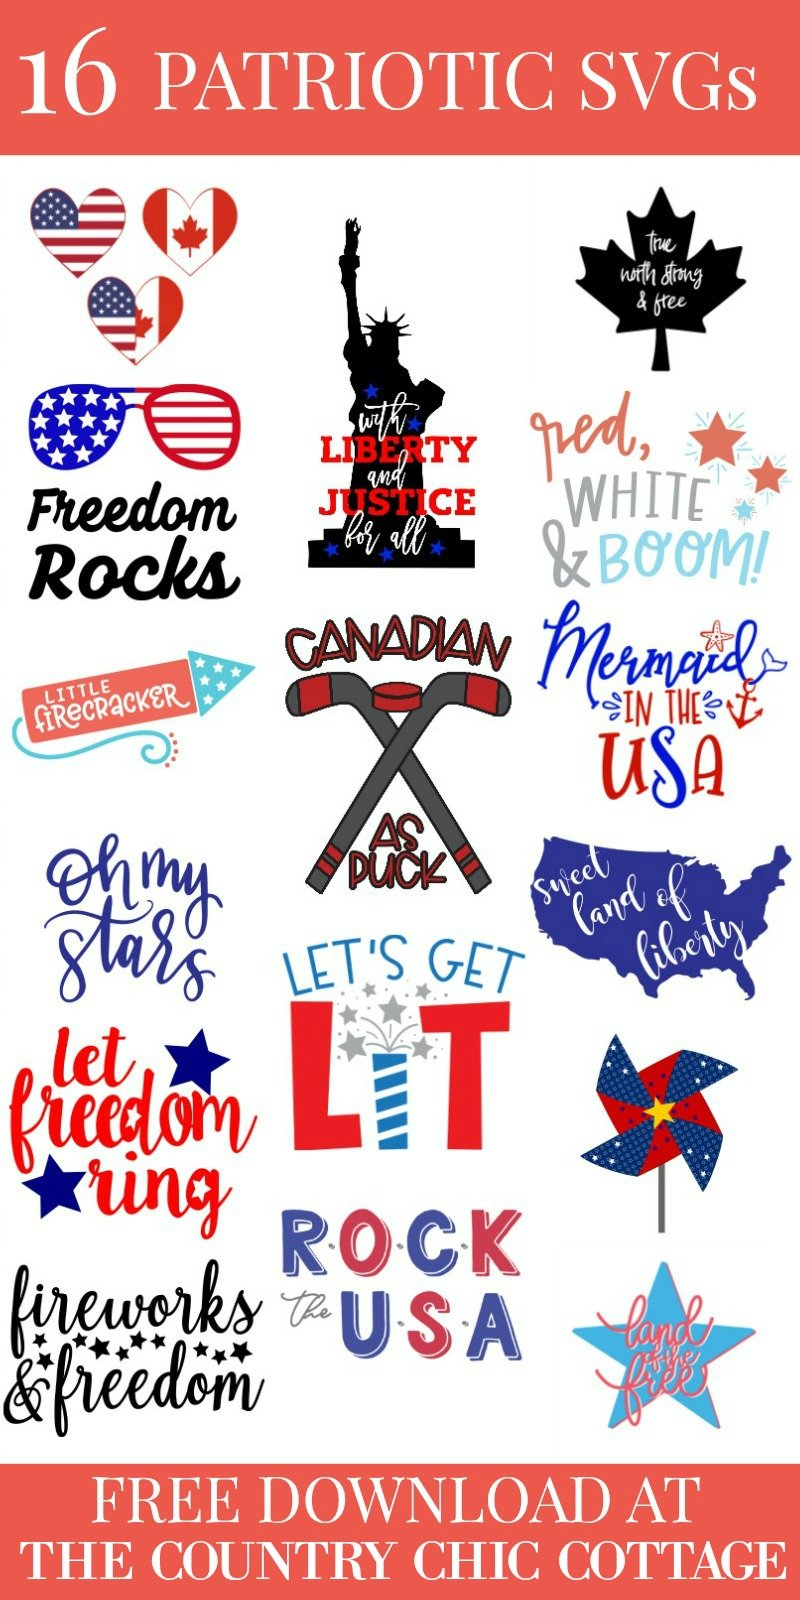 16 free patriotic SVG files all waiting for you to create something spectacular this summer! #cricut #cricutmade #silhouette #silhouettecameo #svg #svgfiles #freesvg